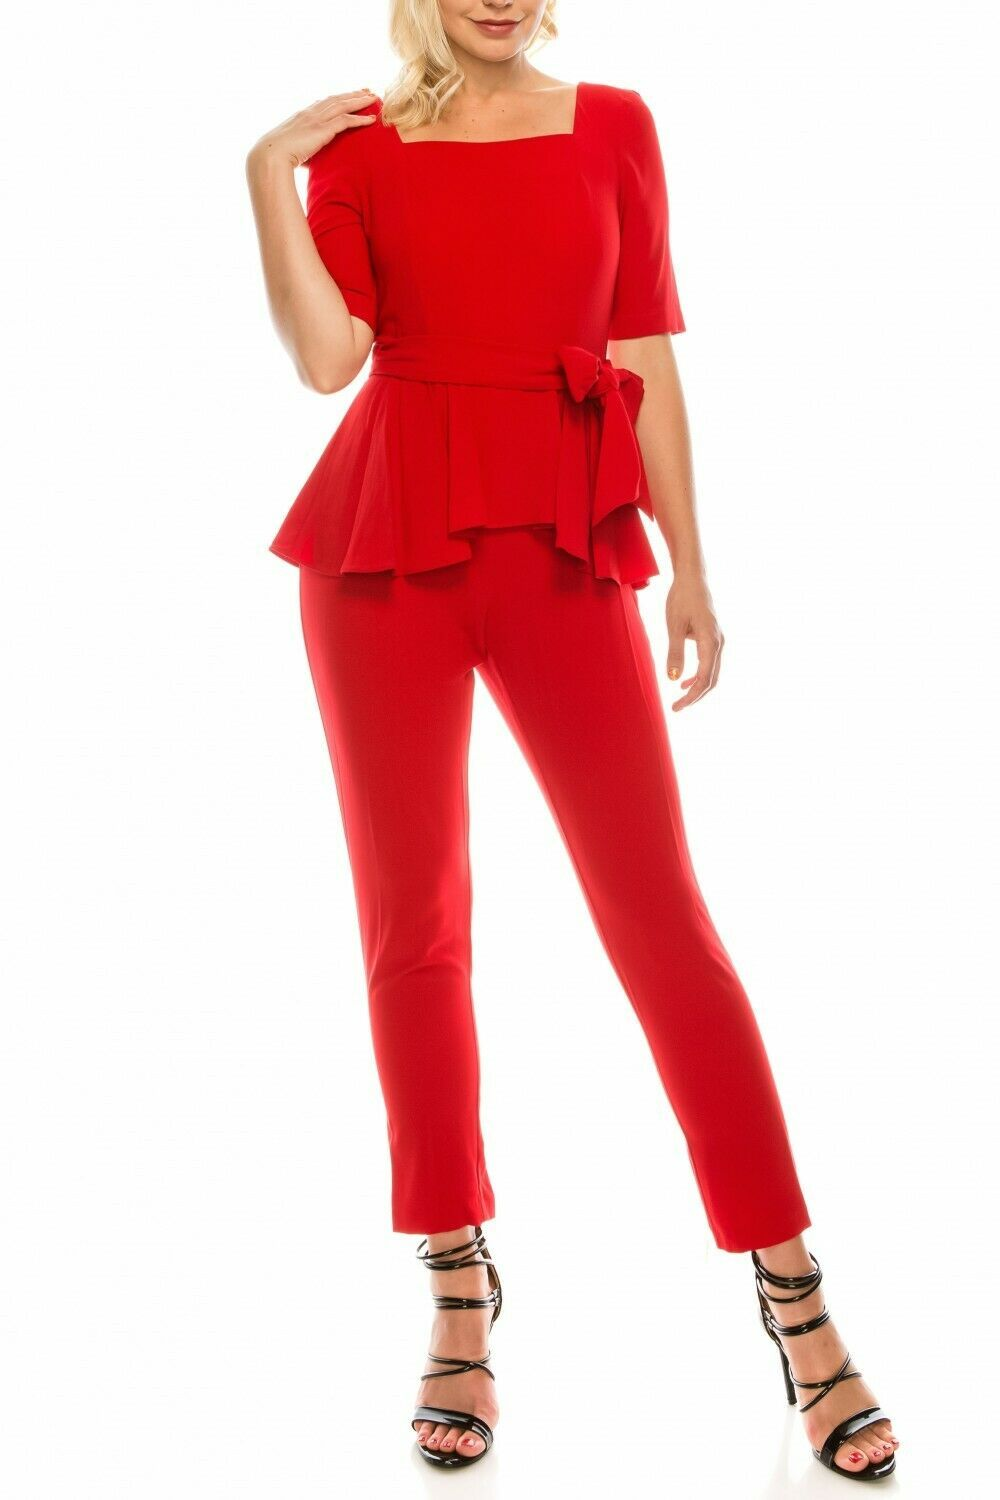 Primary image for Flirty Gabby Skye Regal Red Square Neckline Peplum Jumpsuit, 8-16